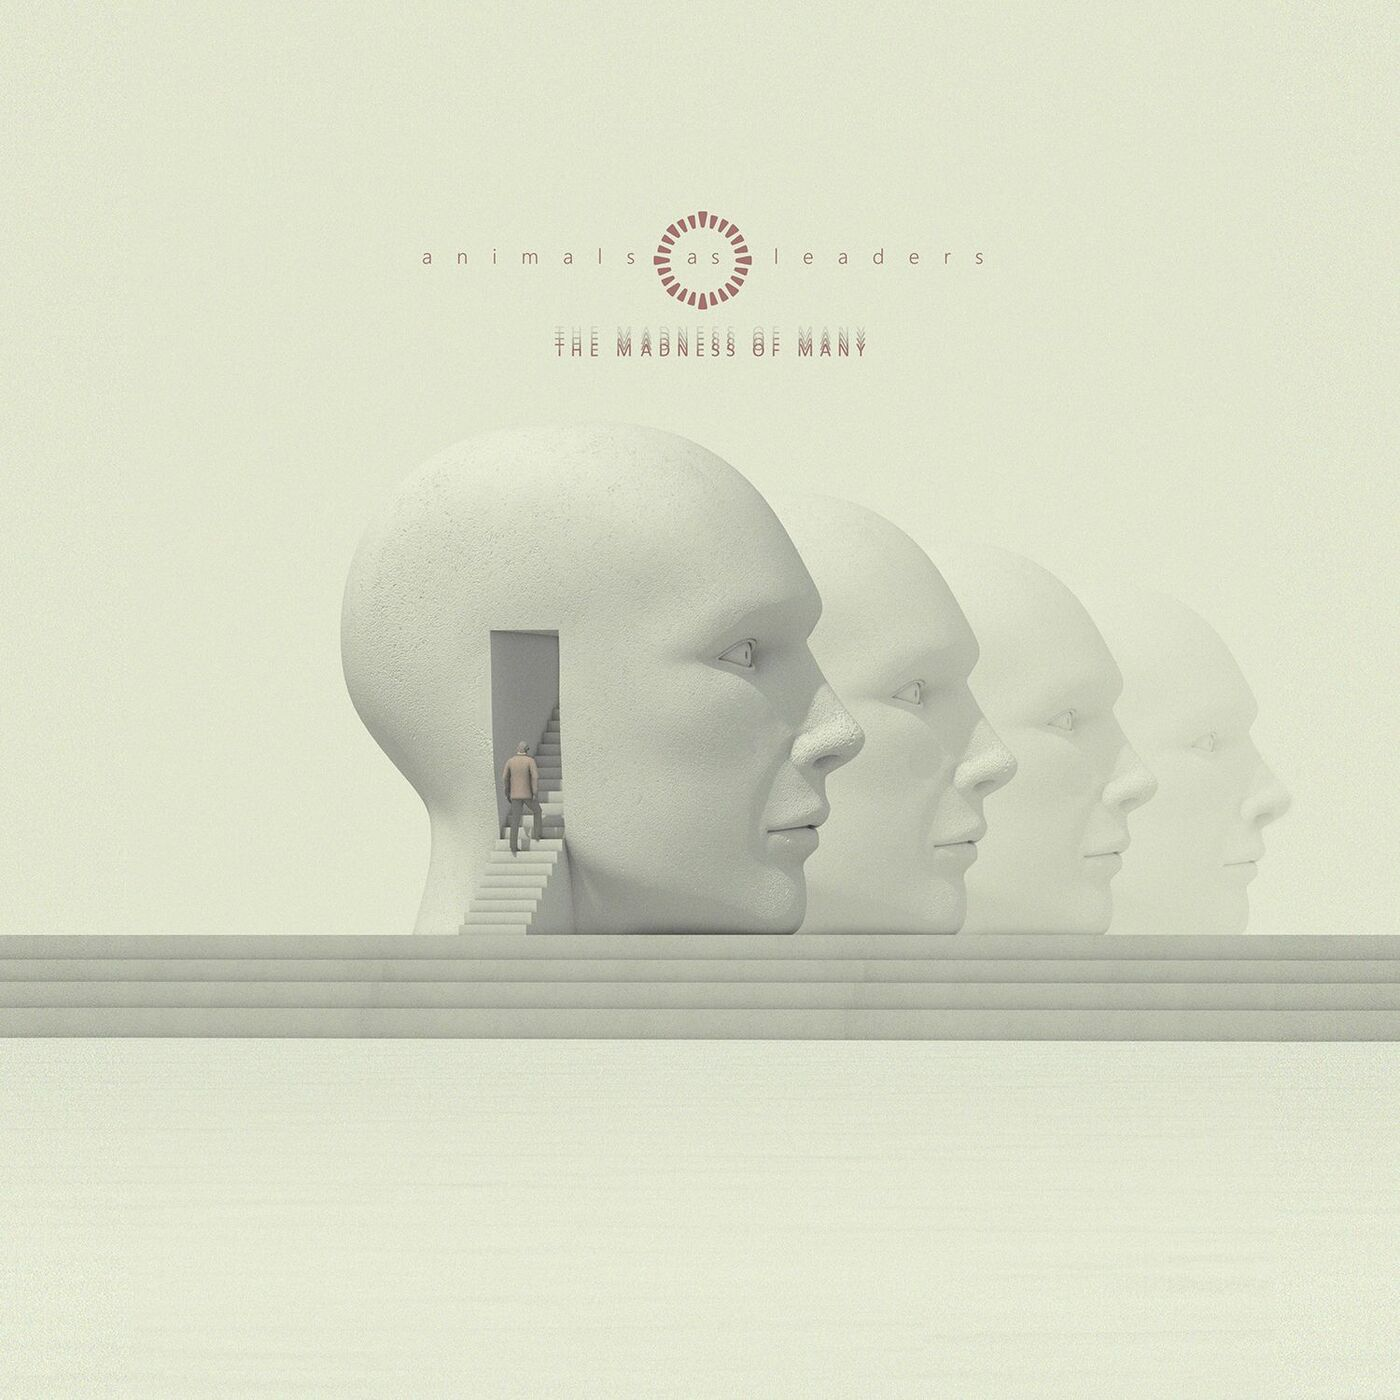 Animals As Leaders - Inner Assassins [single] (2016)